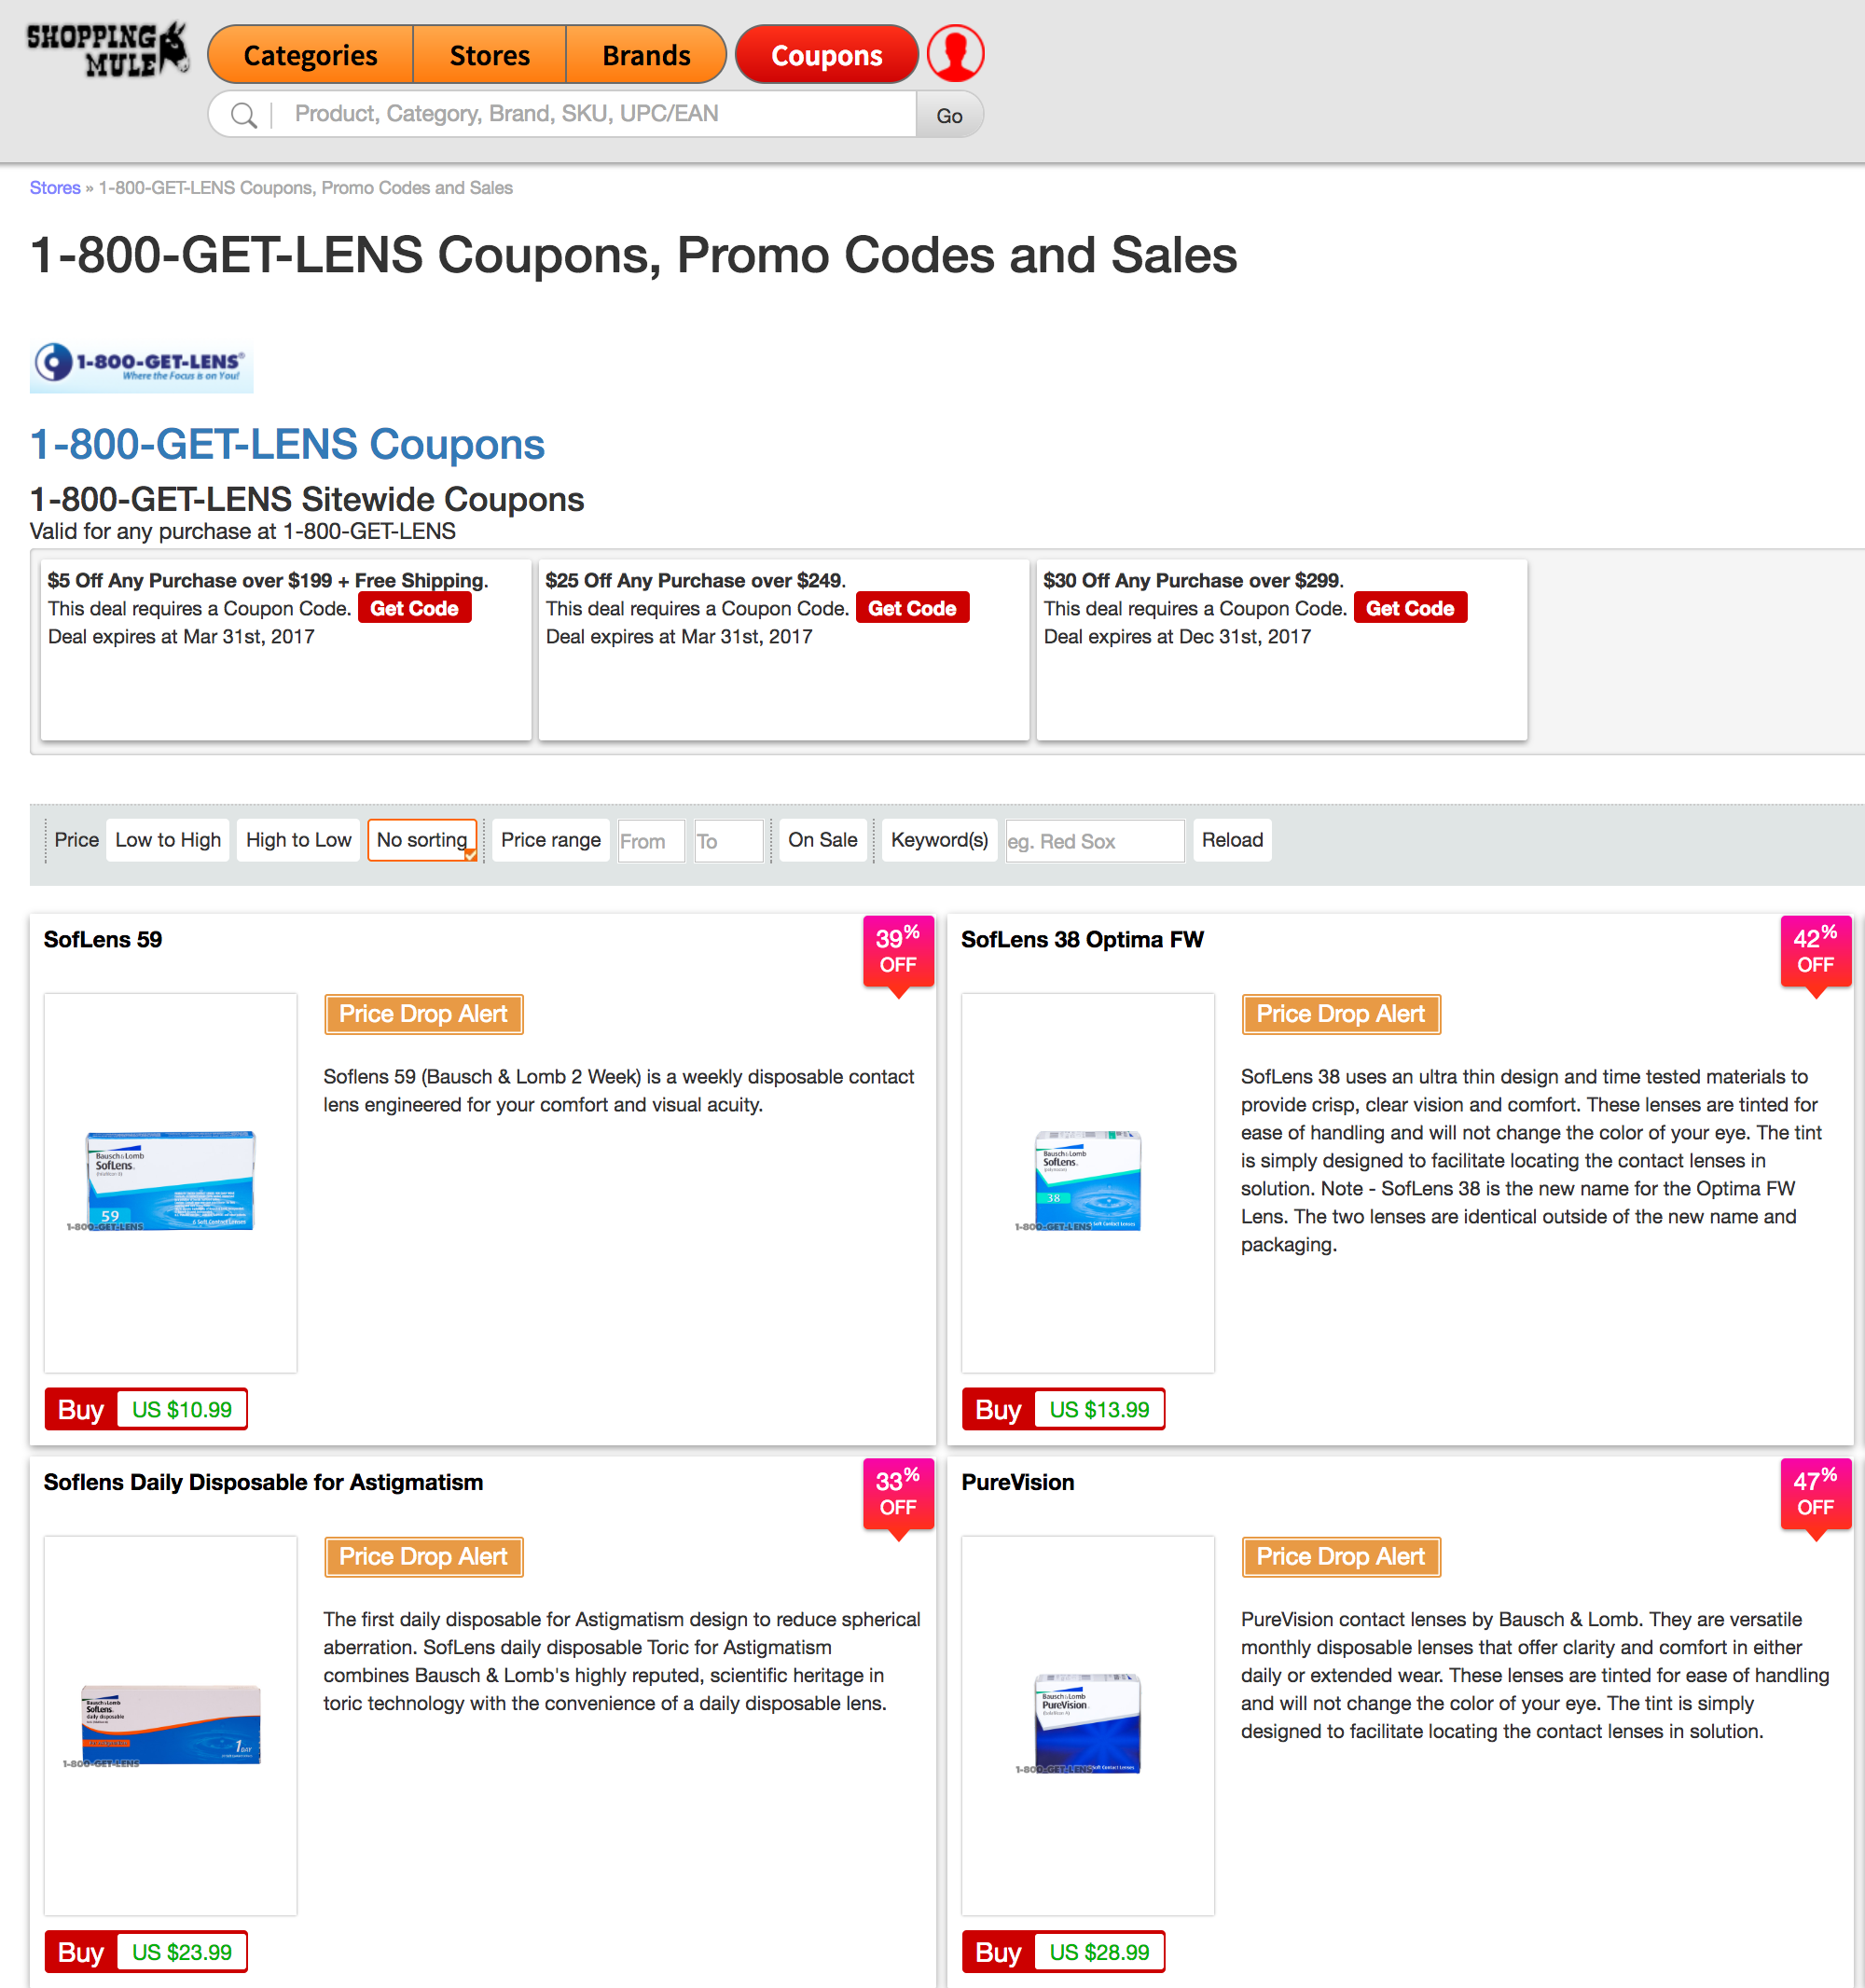 1 800 Get Lens Coupons Here You Can Find Coupons Promo Codes And Sales On Contact Lenses From 1800getlens Find Coupons Optician Prescription Contact Lenses